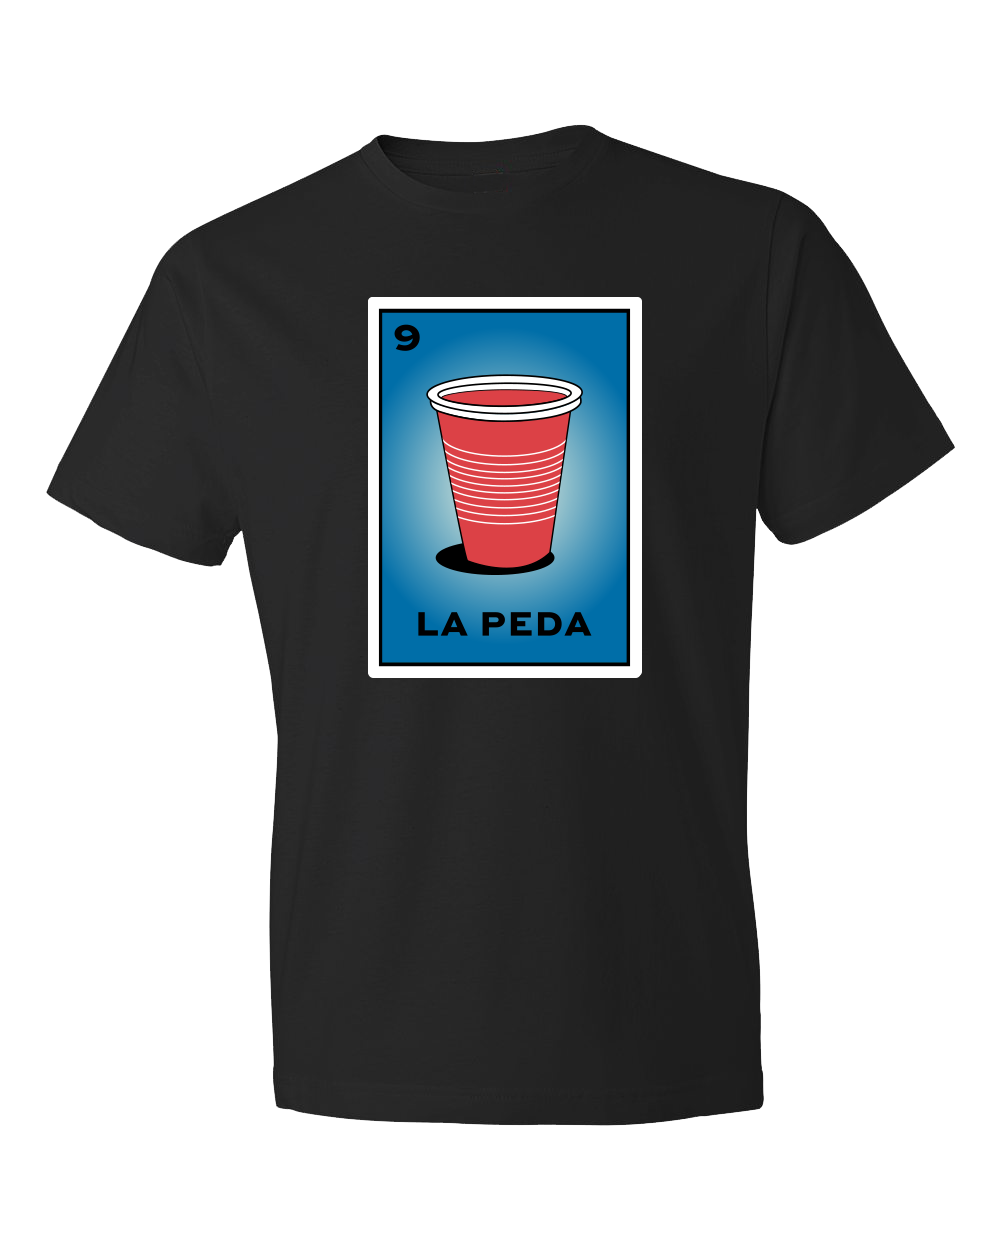 Loteria Shirts La Peda tshirt adult women tees mexican shirts graphic design inspired by La loteria Mexican Game. Designed and Printed Locally by San Diego, California, USA artist. Perfect outfit idea for your drunk friend Birthday gift. A Cultural, Artistic, and Trendy Popular Tee.